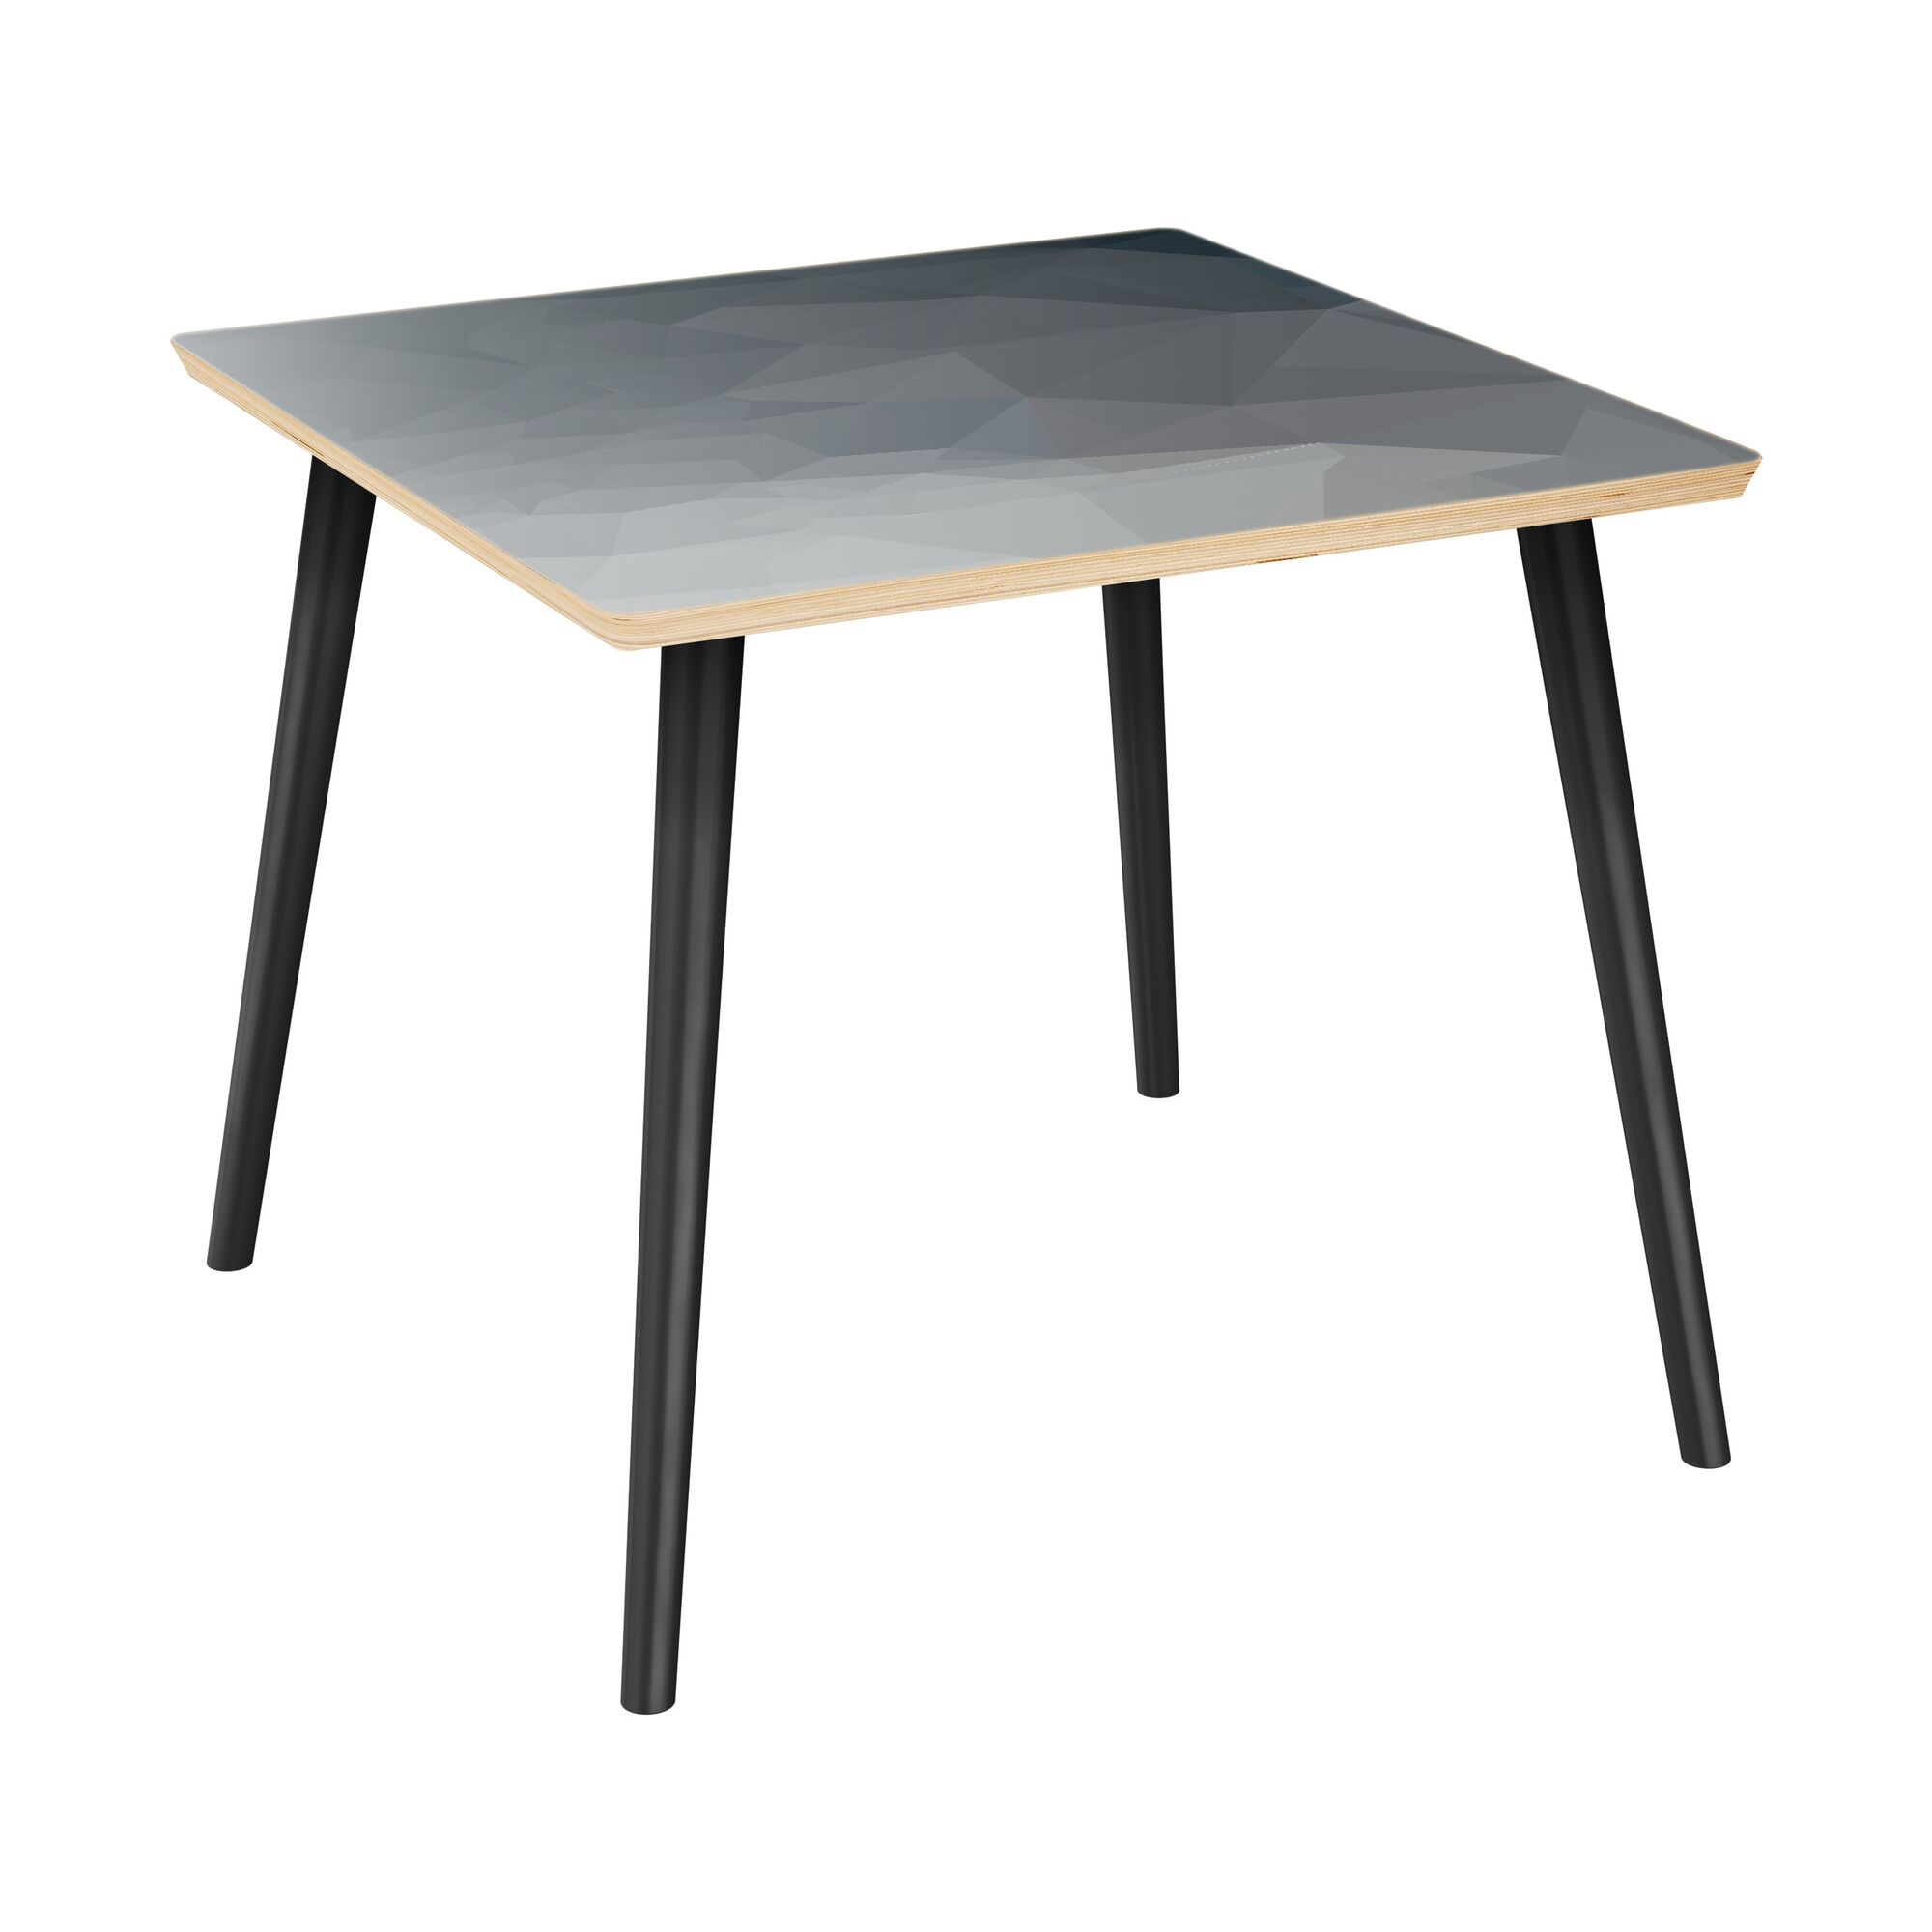 Kylertown End Table Table Top Boarder Color: Natural, Table Base Color: Black, Table Top Color: Blue